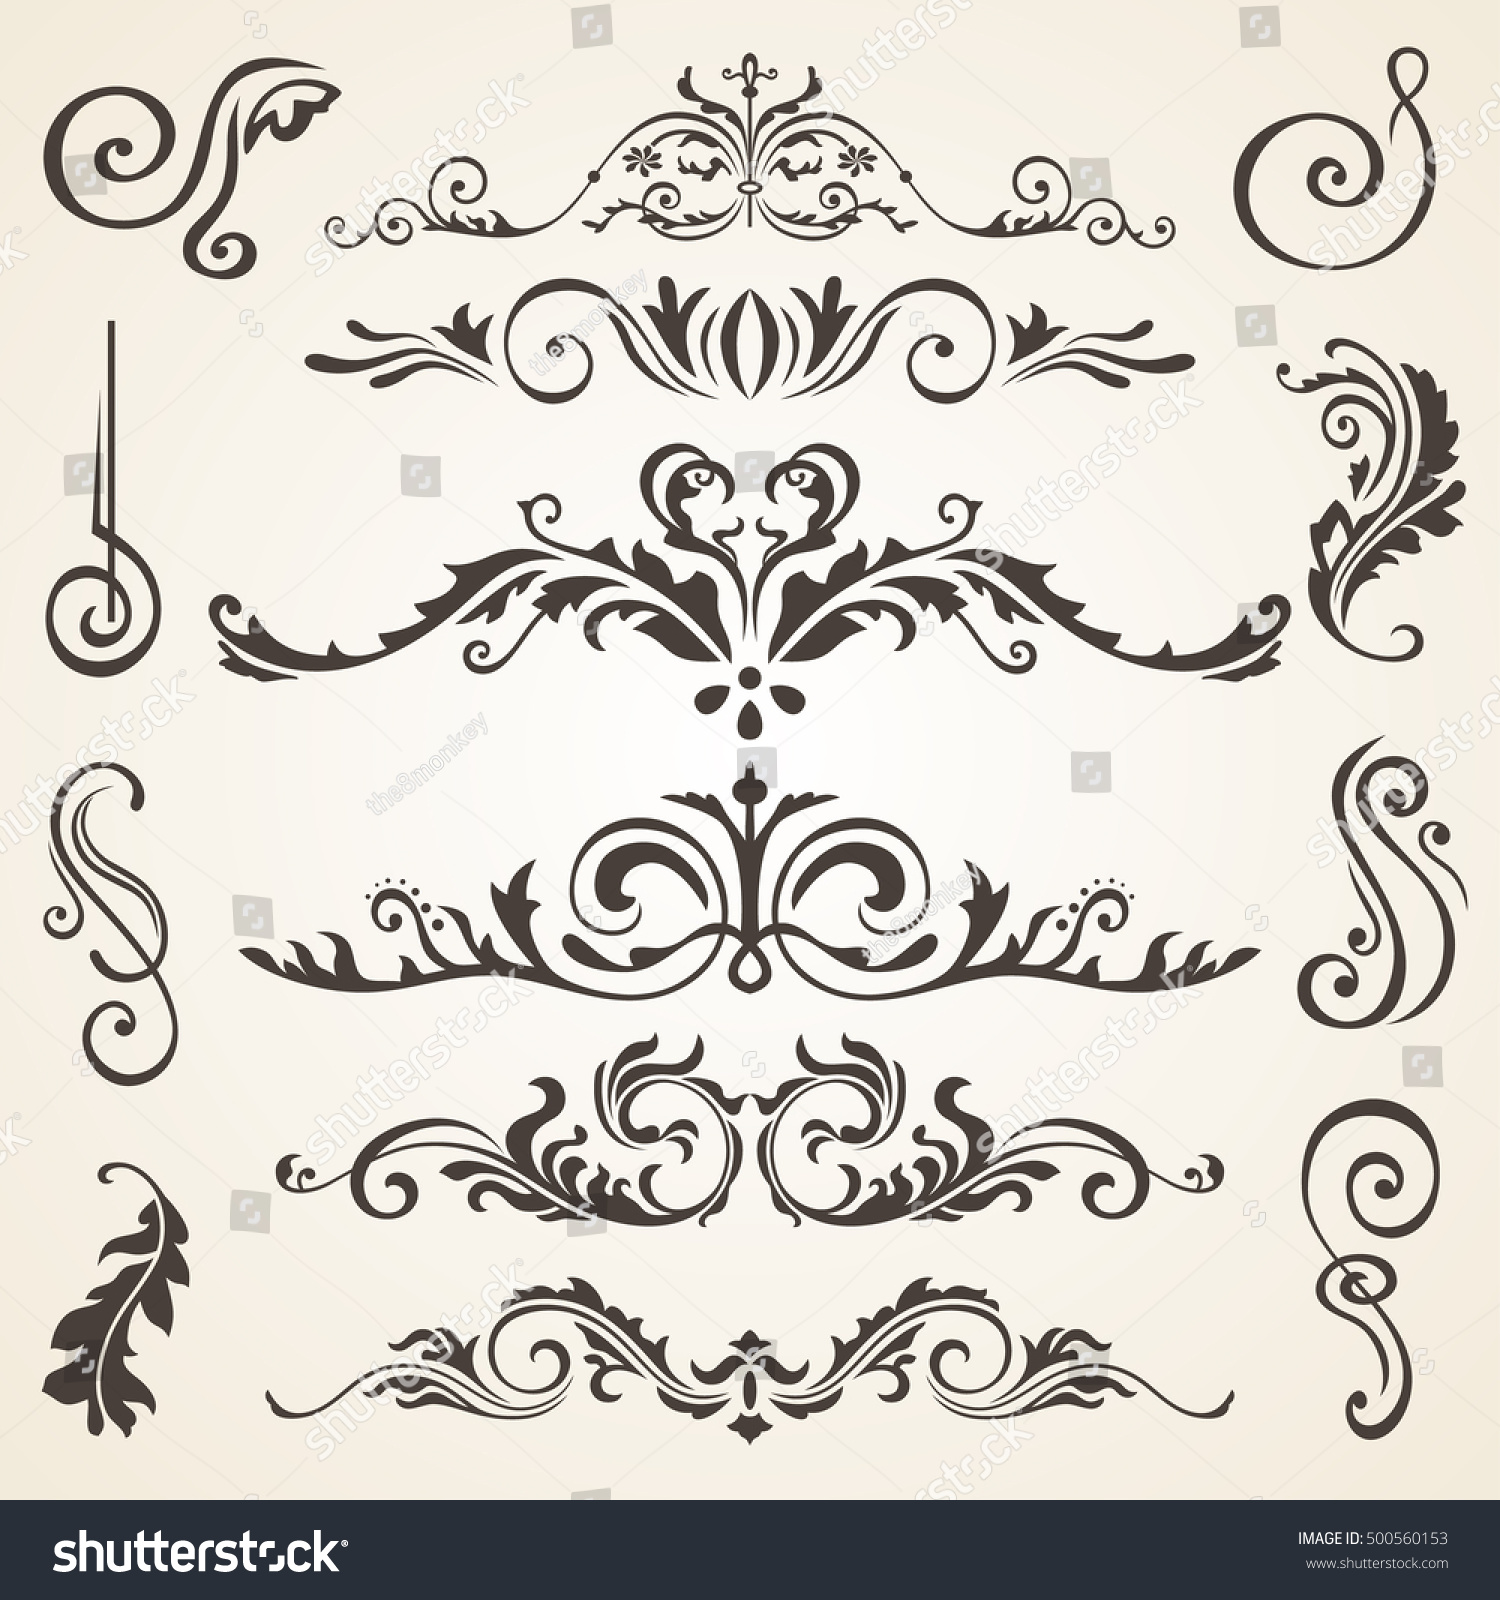 Calligraphic design elements and page decoration. Vector set to embellish  your layout. Victorian design